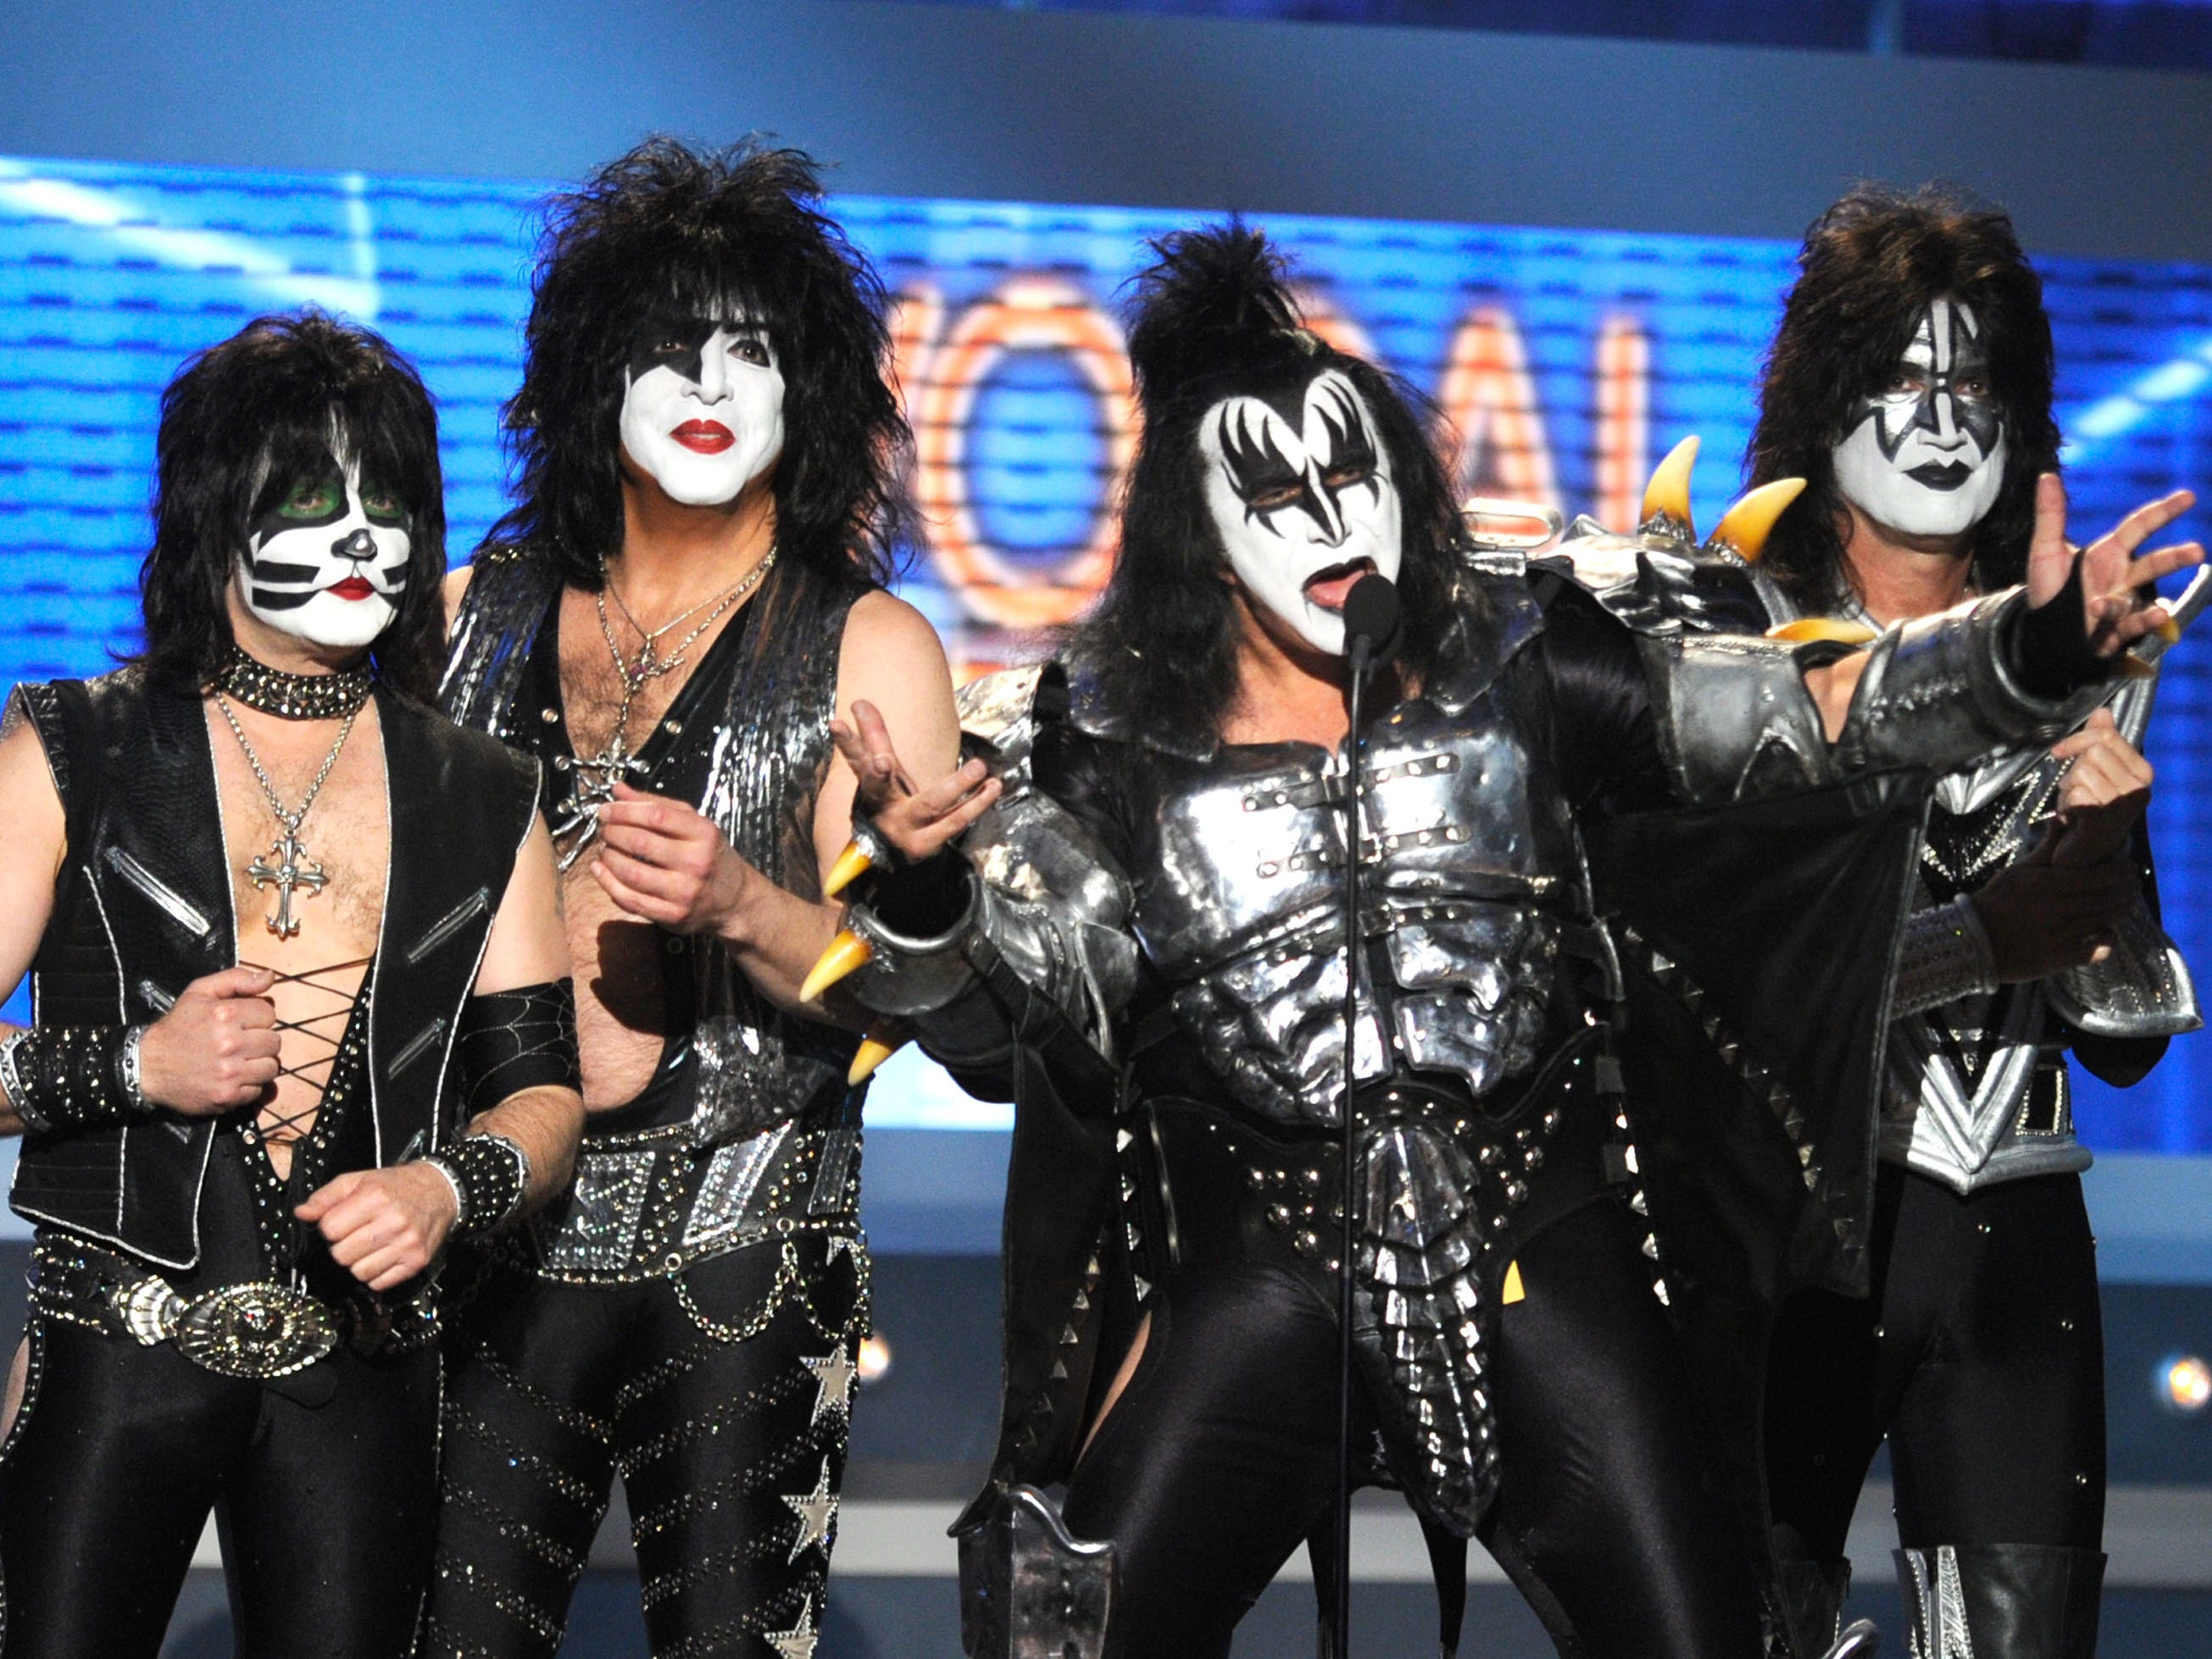 LAS VEGAS, NV - APRIL 01:  Musicians Eric Singer, Paul Stanley, Gene Simmons and Tommy Thayer of KISS speak onstage at the 47th Annual Academy Of Country Music Awards held at the MGM Grand Garden Arena on April 1, 2012 in Las Vegas, Nevada.  (Photo by Ethan Miller/Getty Images)